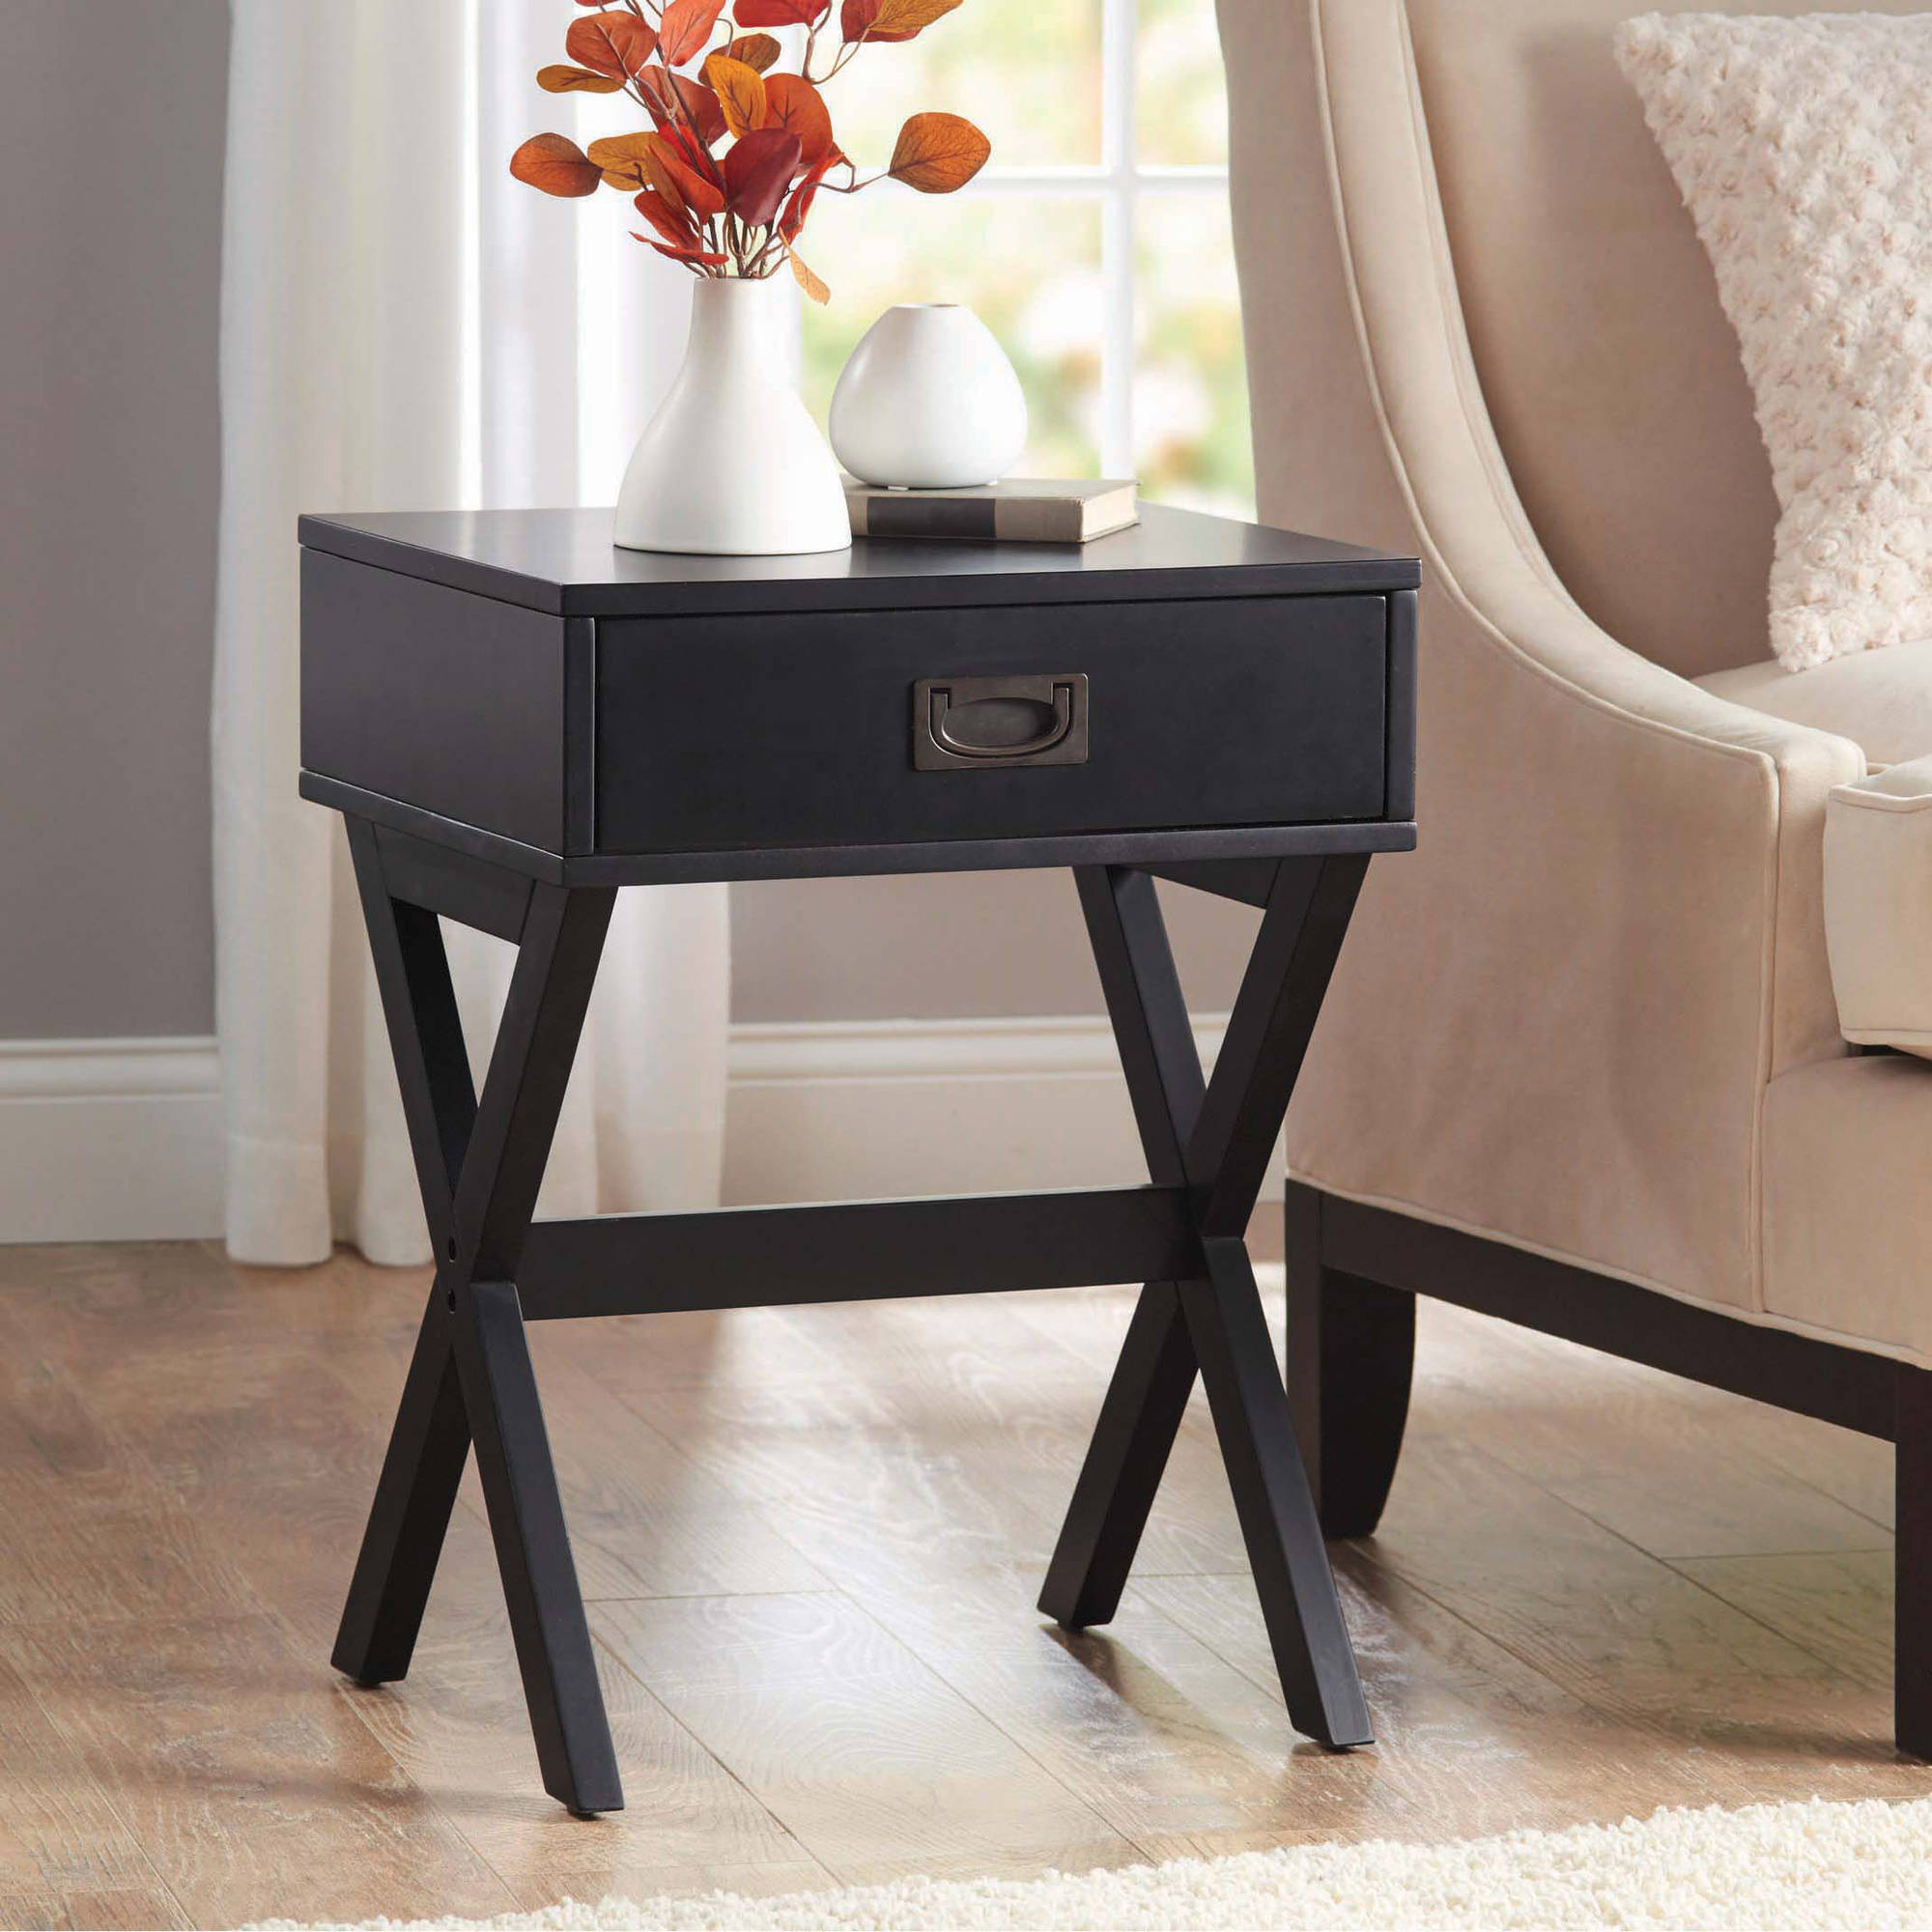 better homes gardens leg accent table with drawer multiple end tables colors tiffany lamp base ikea lack homegoods console round skirts inch wide nightstand carpet transition